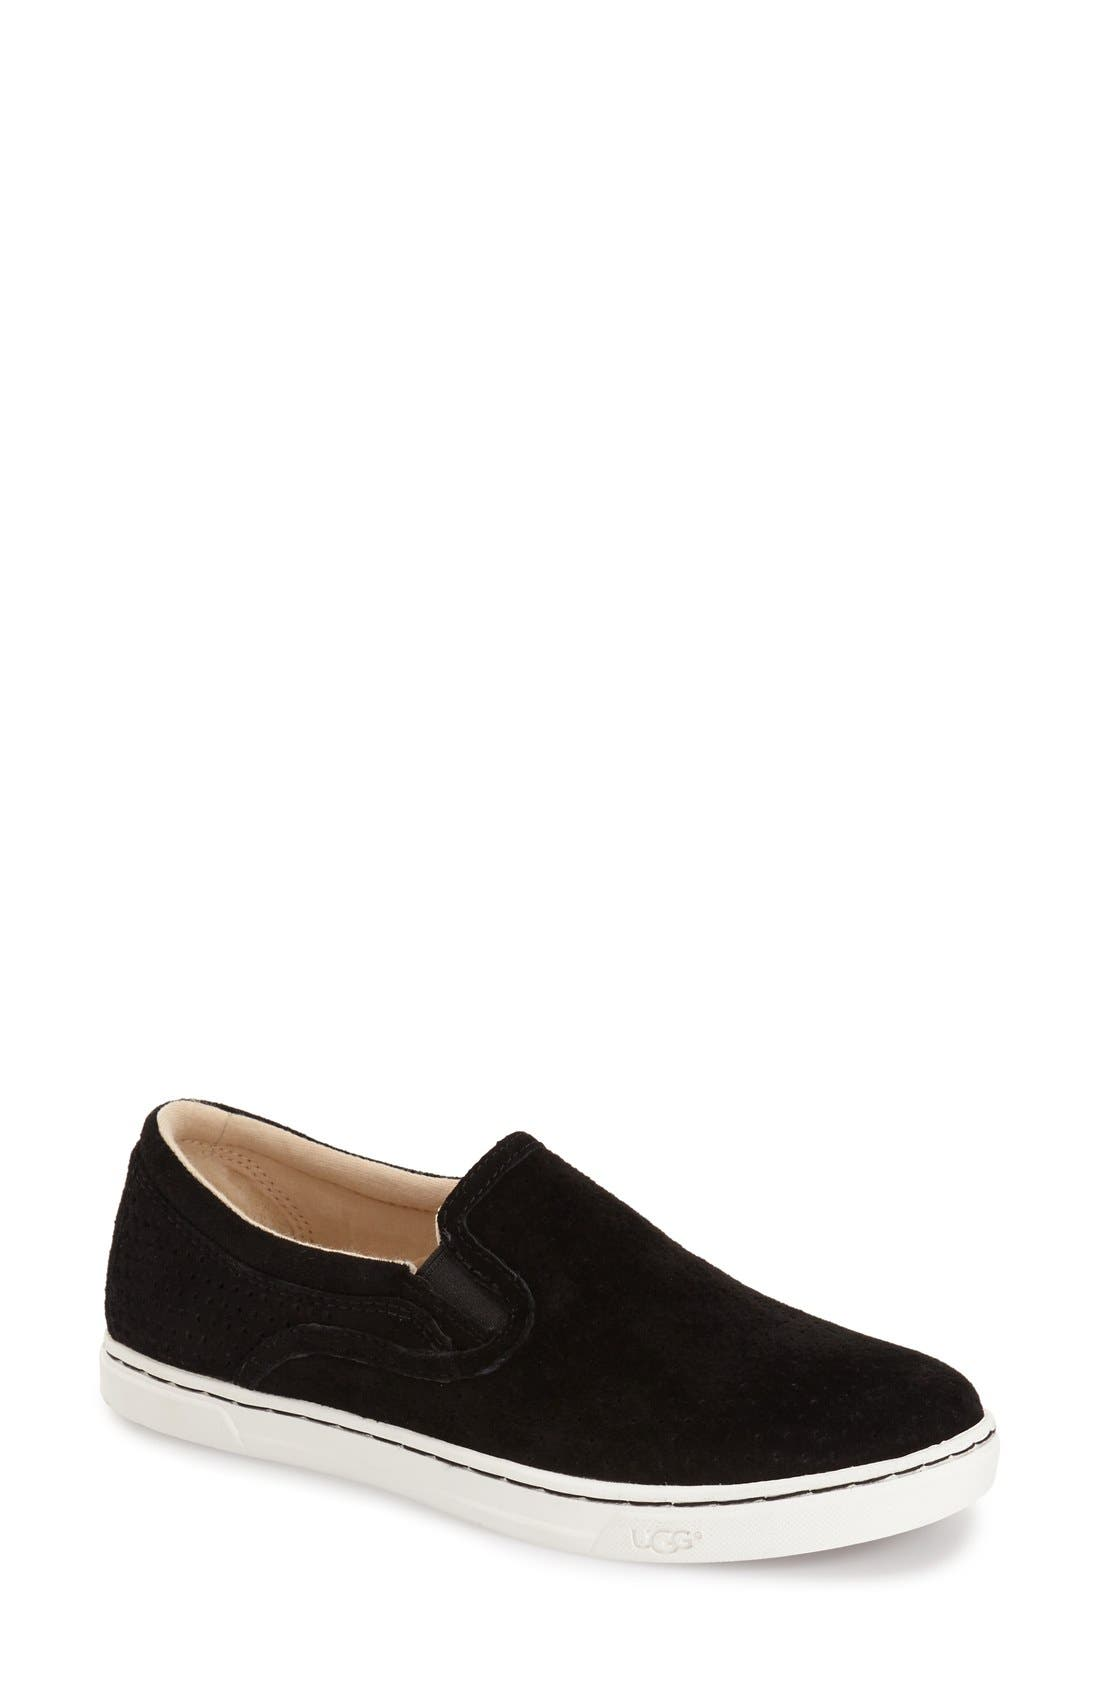 'Fierce Geo' Perforated Slip-On Sneaker,                             Main thumbnail 1, color,                             001